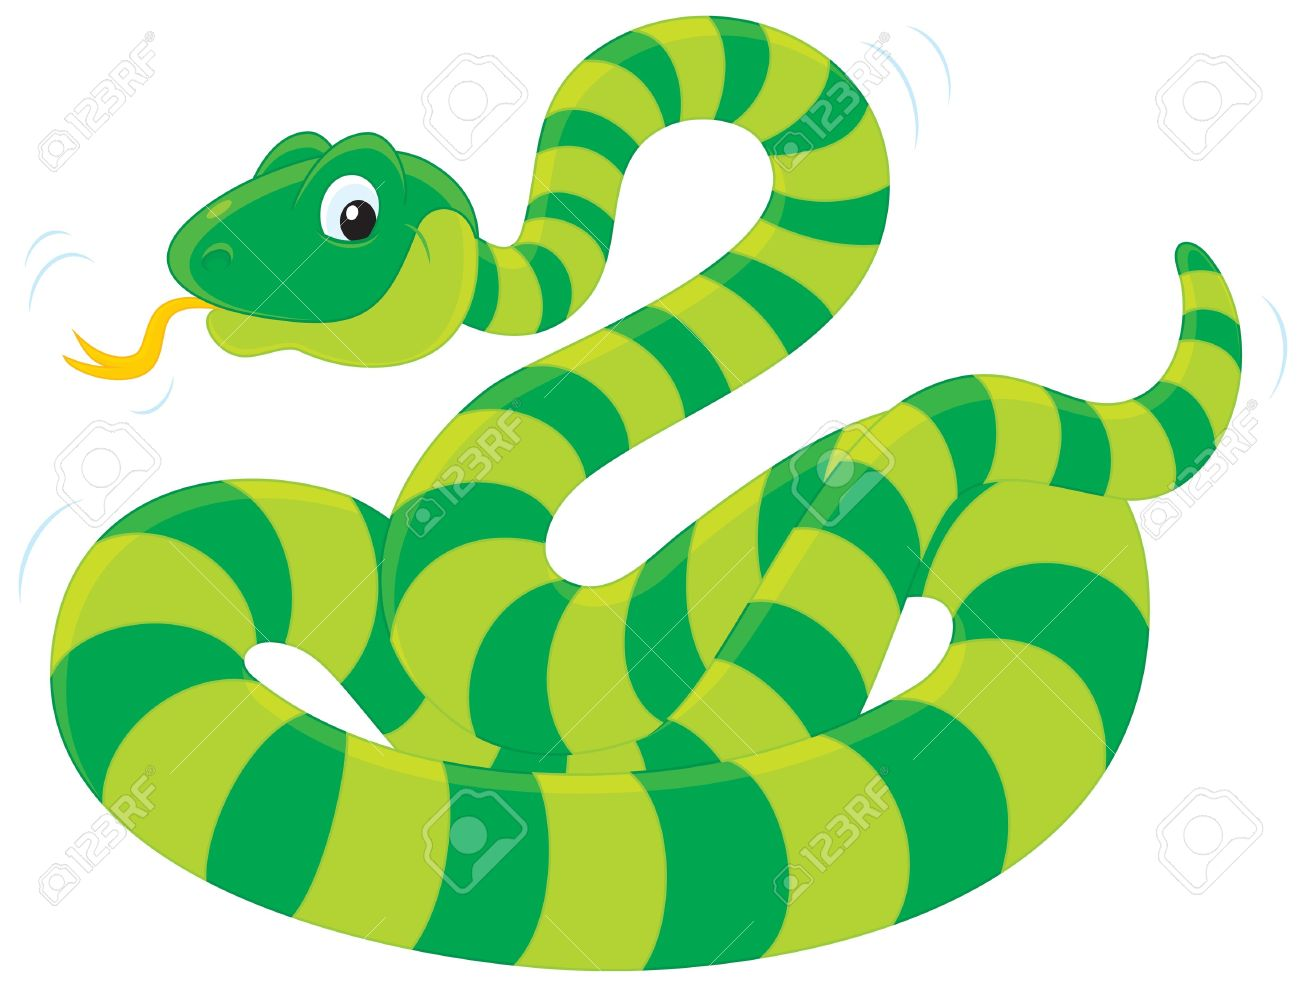 Green Striped Snake Royalty Free Cliparts, Vectors, And Stock.